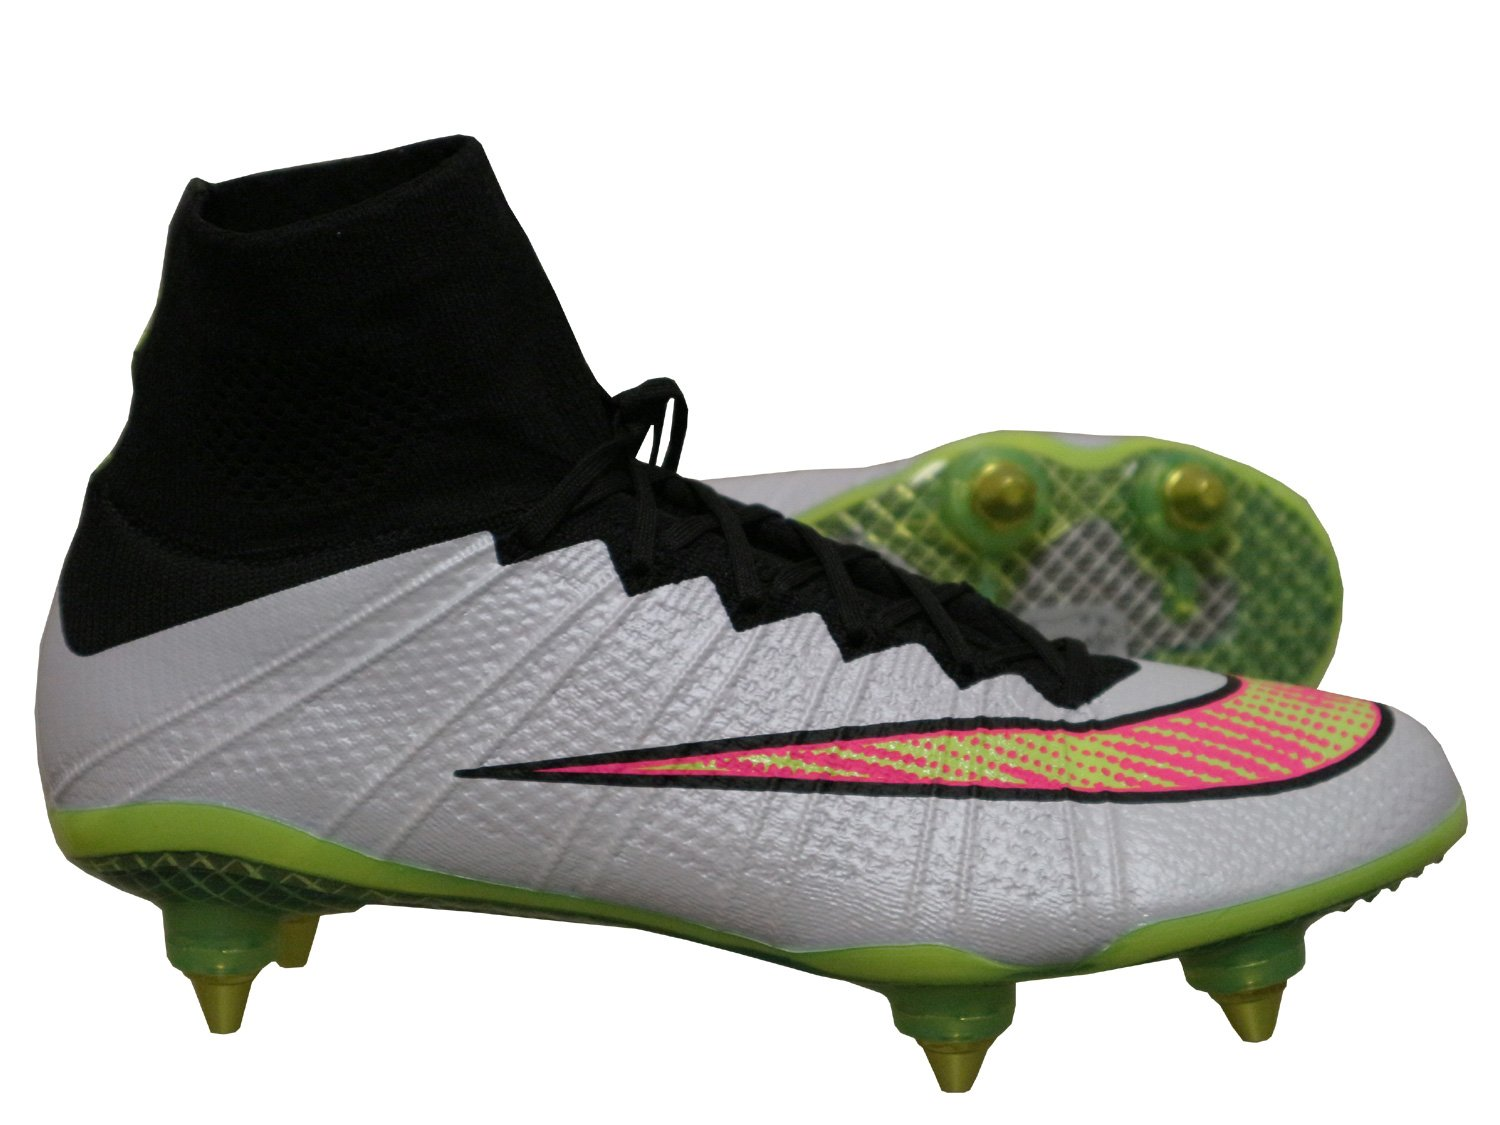 Nike Mercurial Superfly SG Studs Football Boots with Compression Socks White